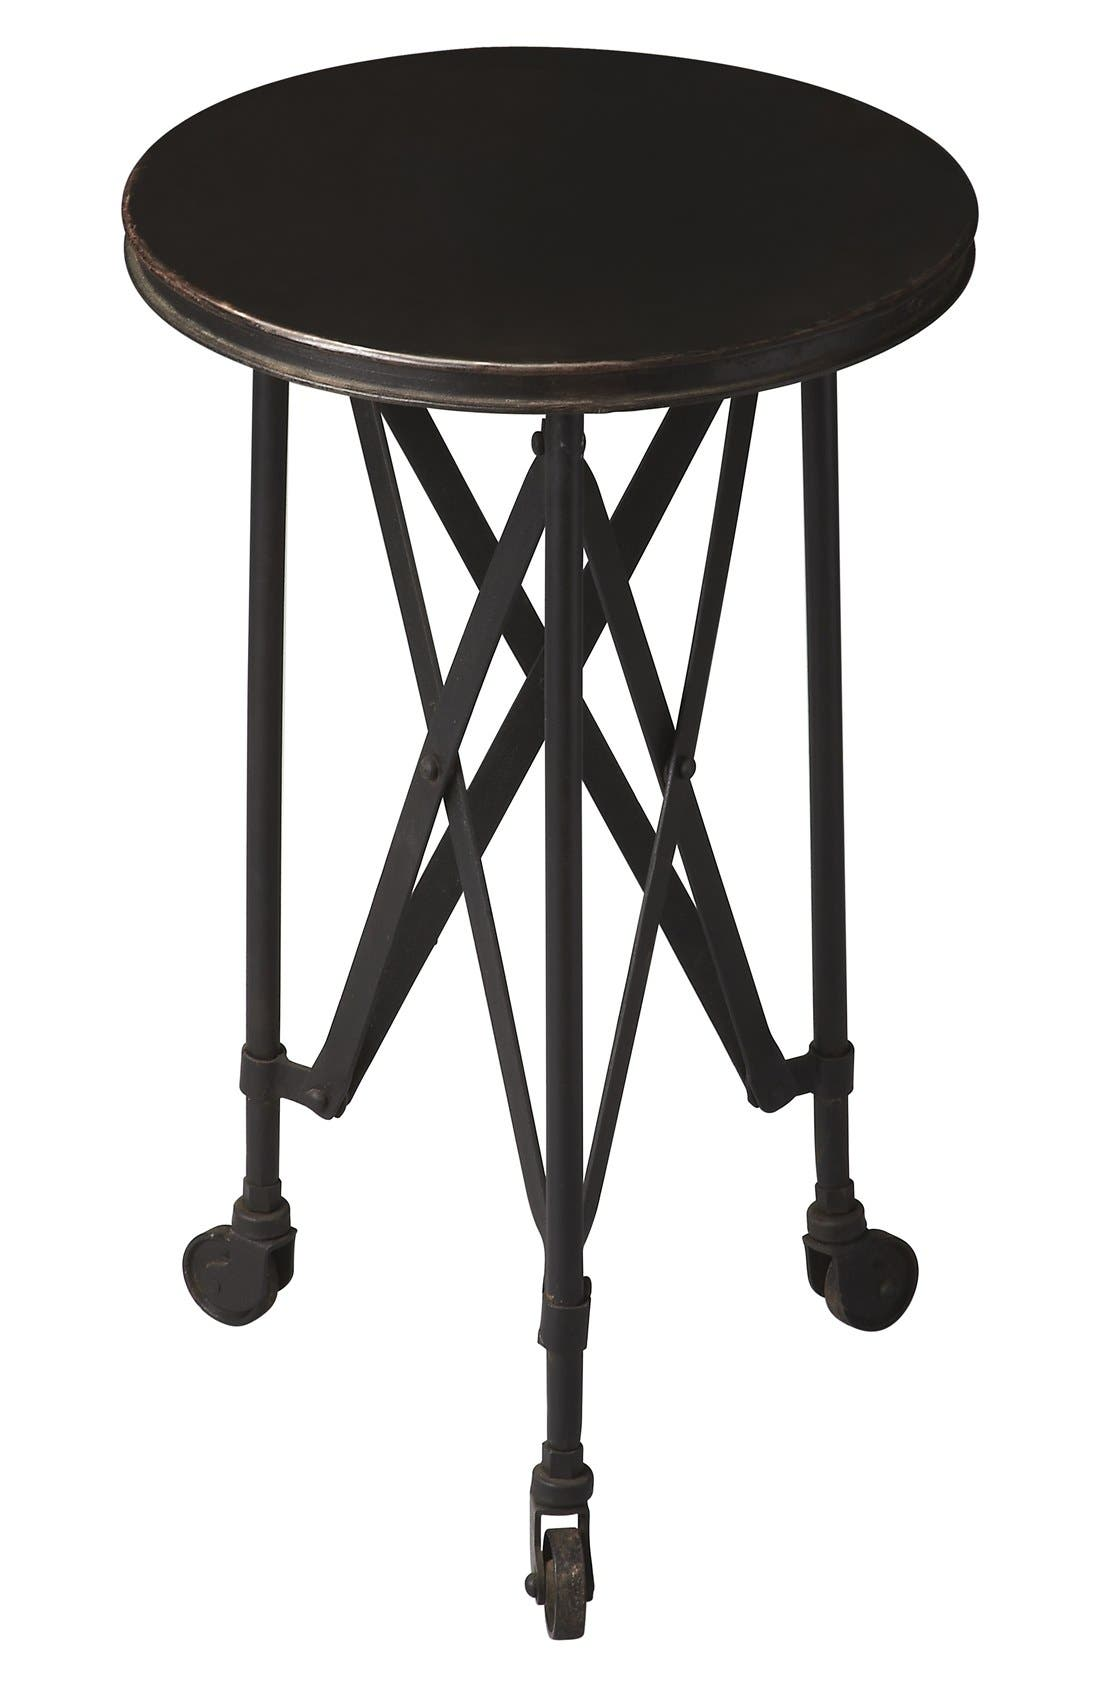 Alternate Image 1 Selected - Butler Iron Accent Table